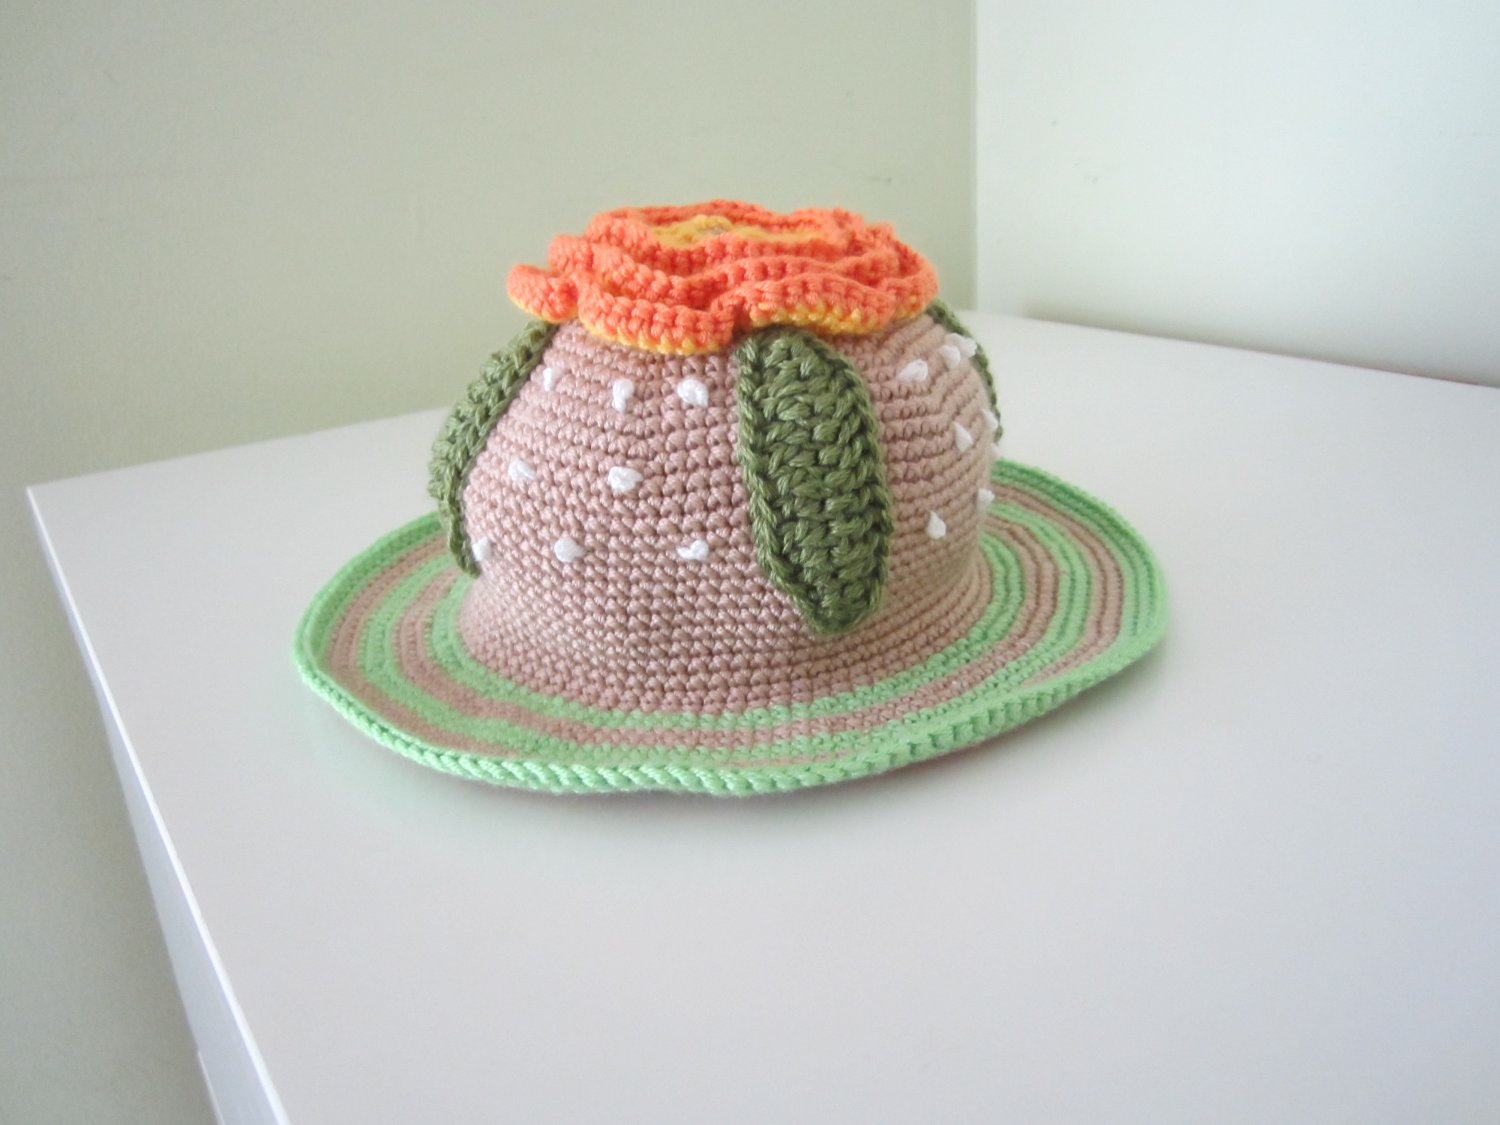 Crochet girl flowerl hat